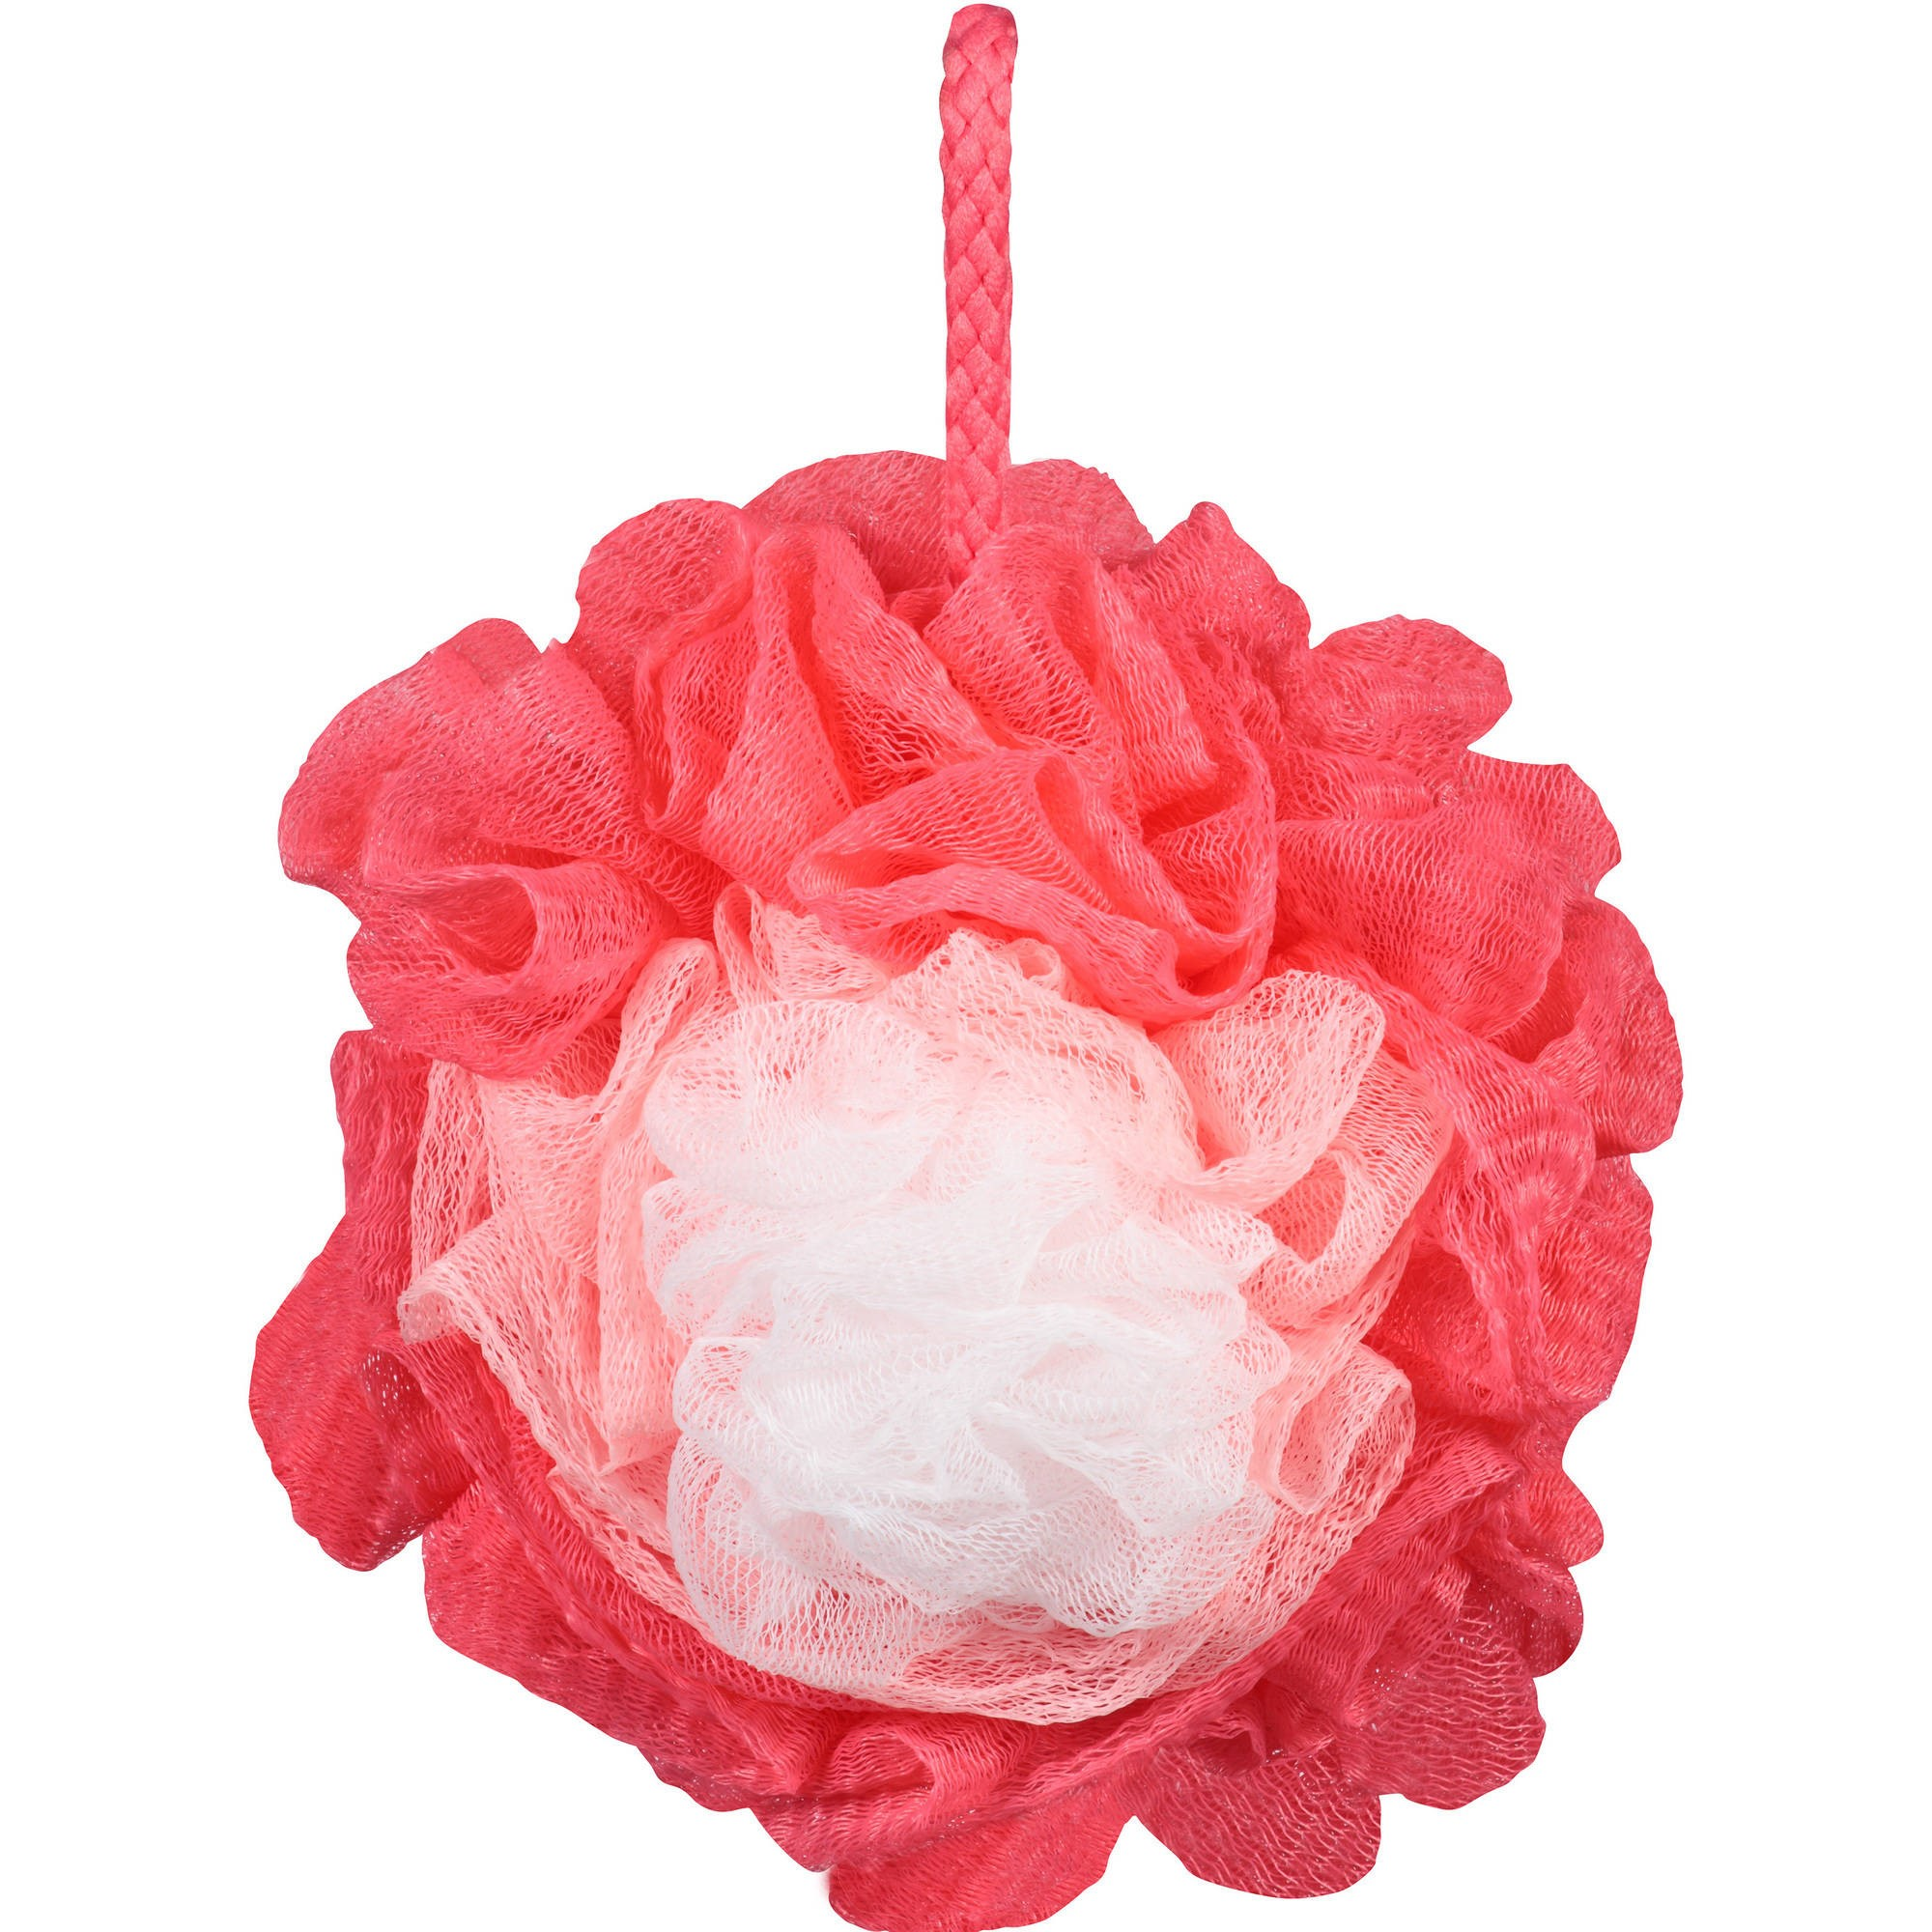 (4 pack) Body Benefits by Body Image Flower Bath Sponge, Color by Vary